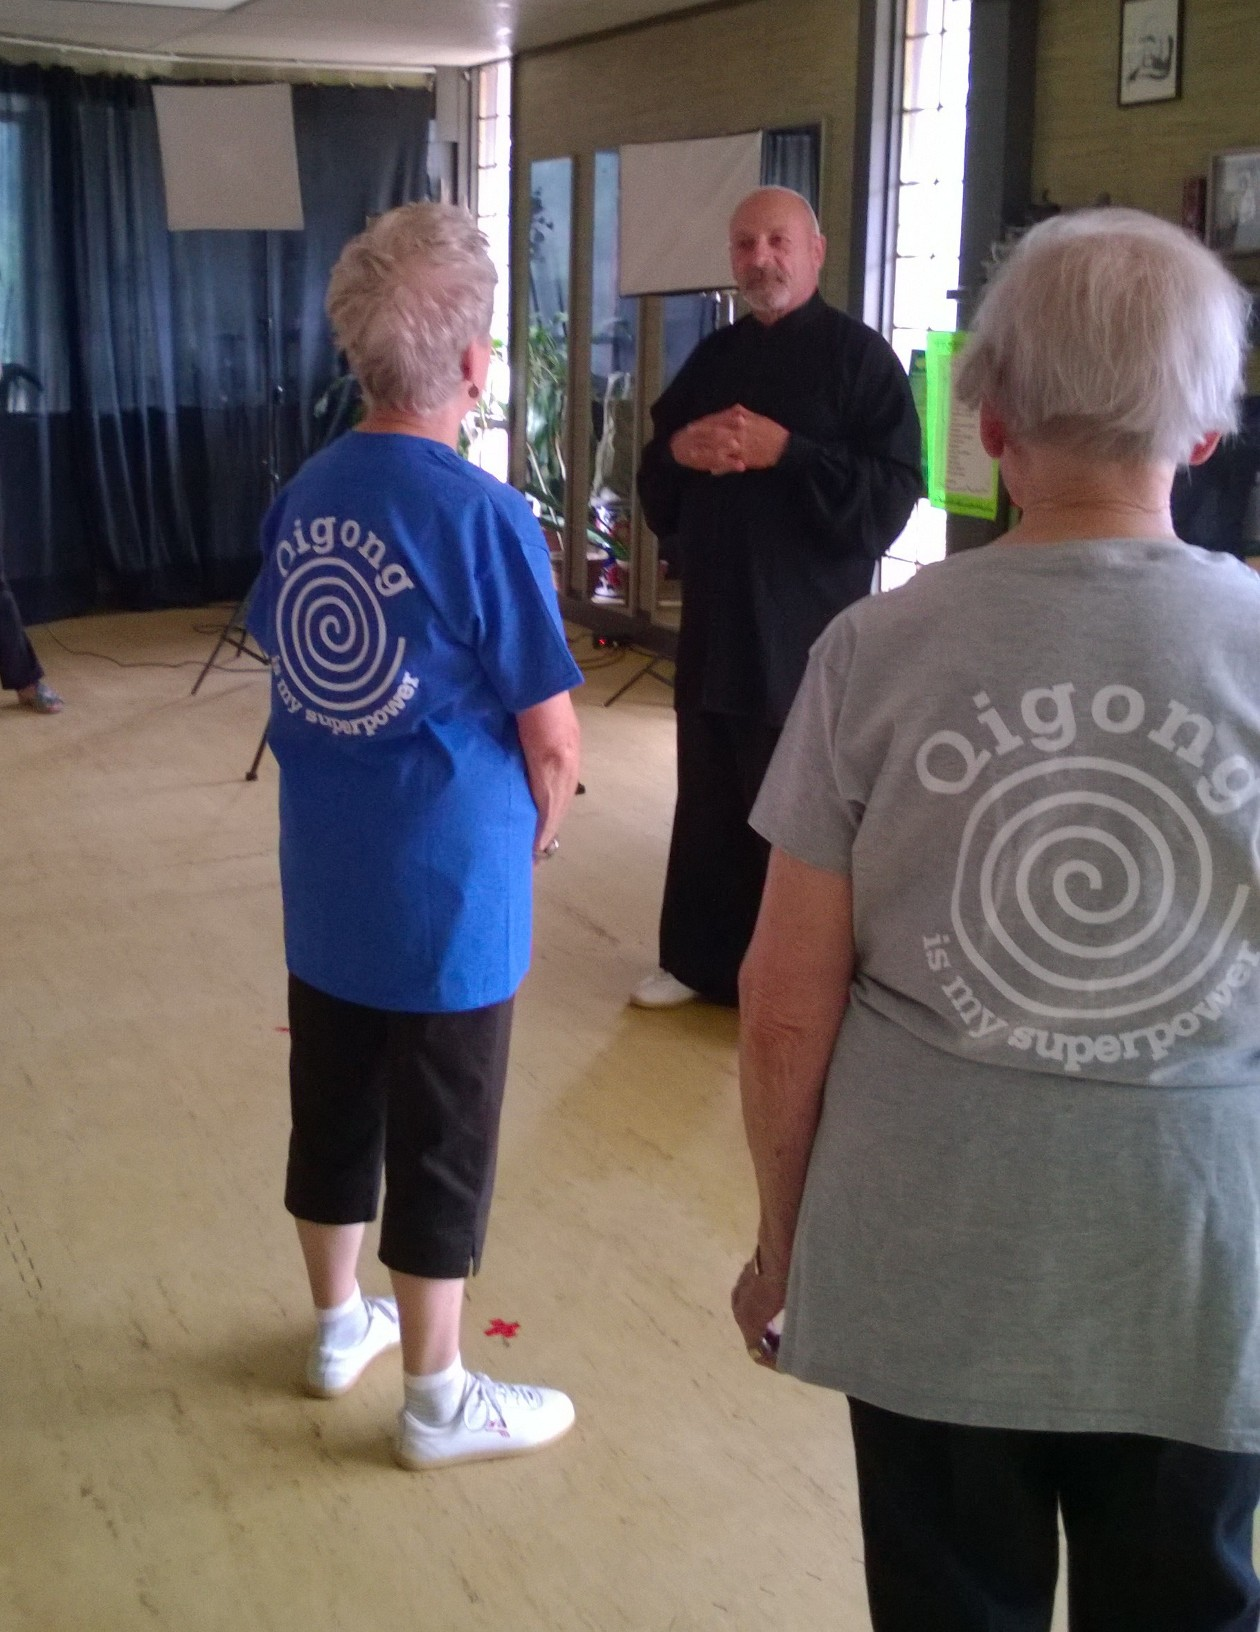 Sifu George Picard leading the group.